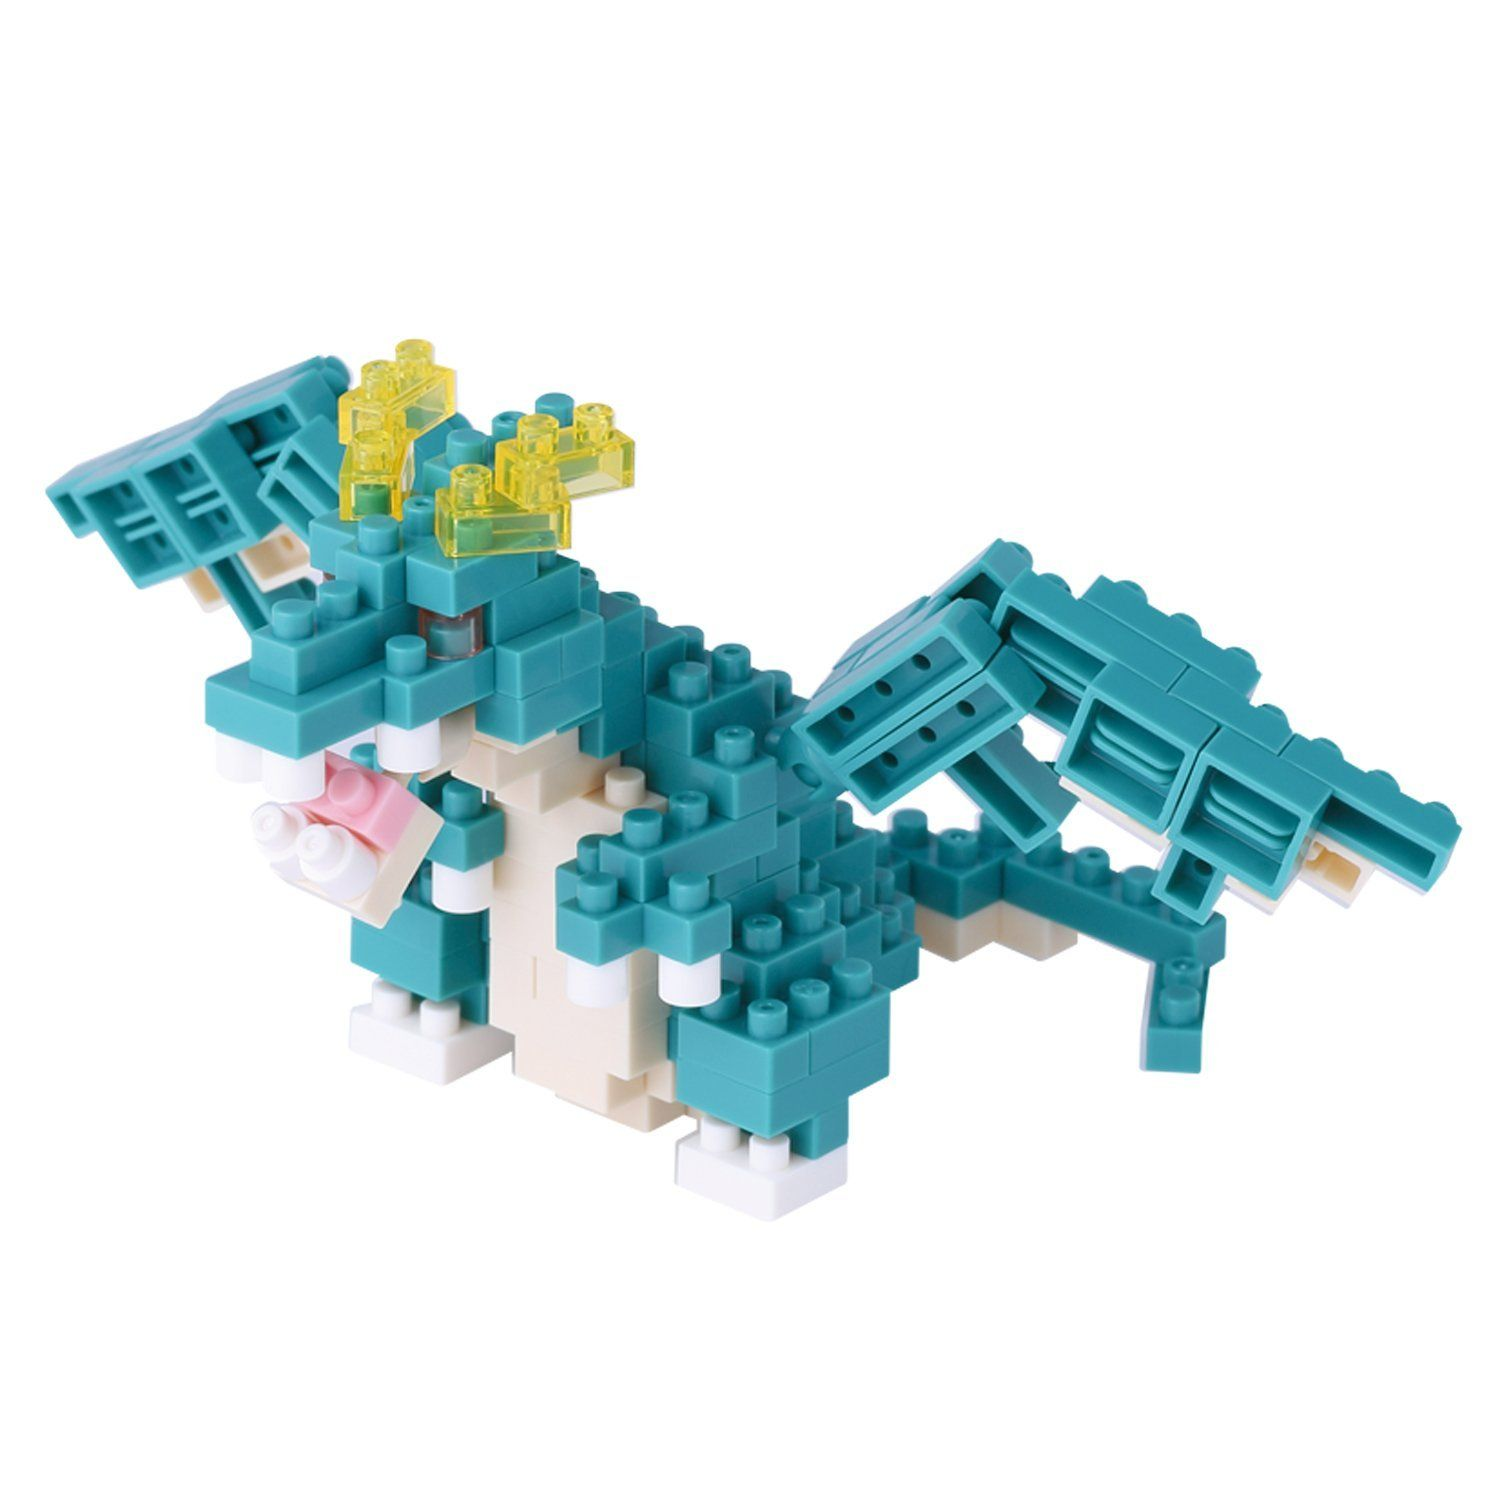 Dragon Mini Building Set by Nanoblock (NBC173) by nanoblock